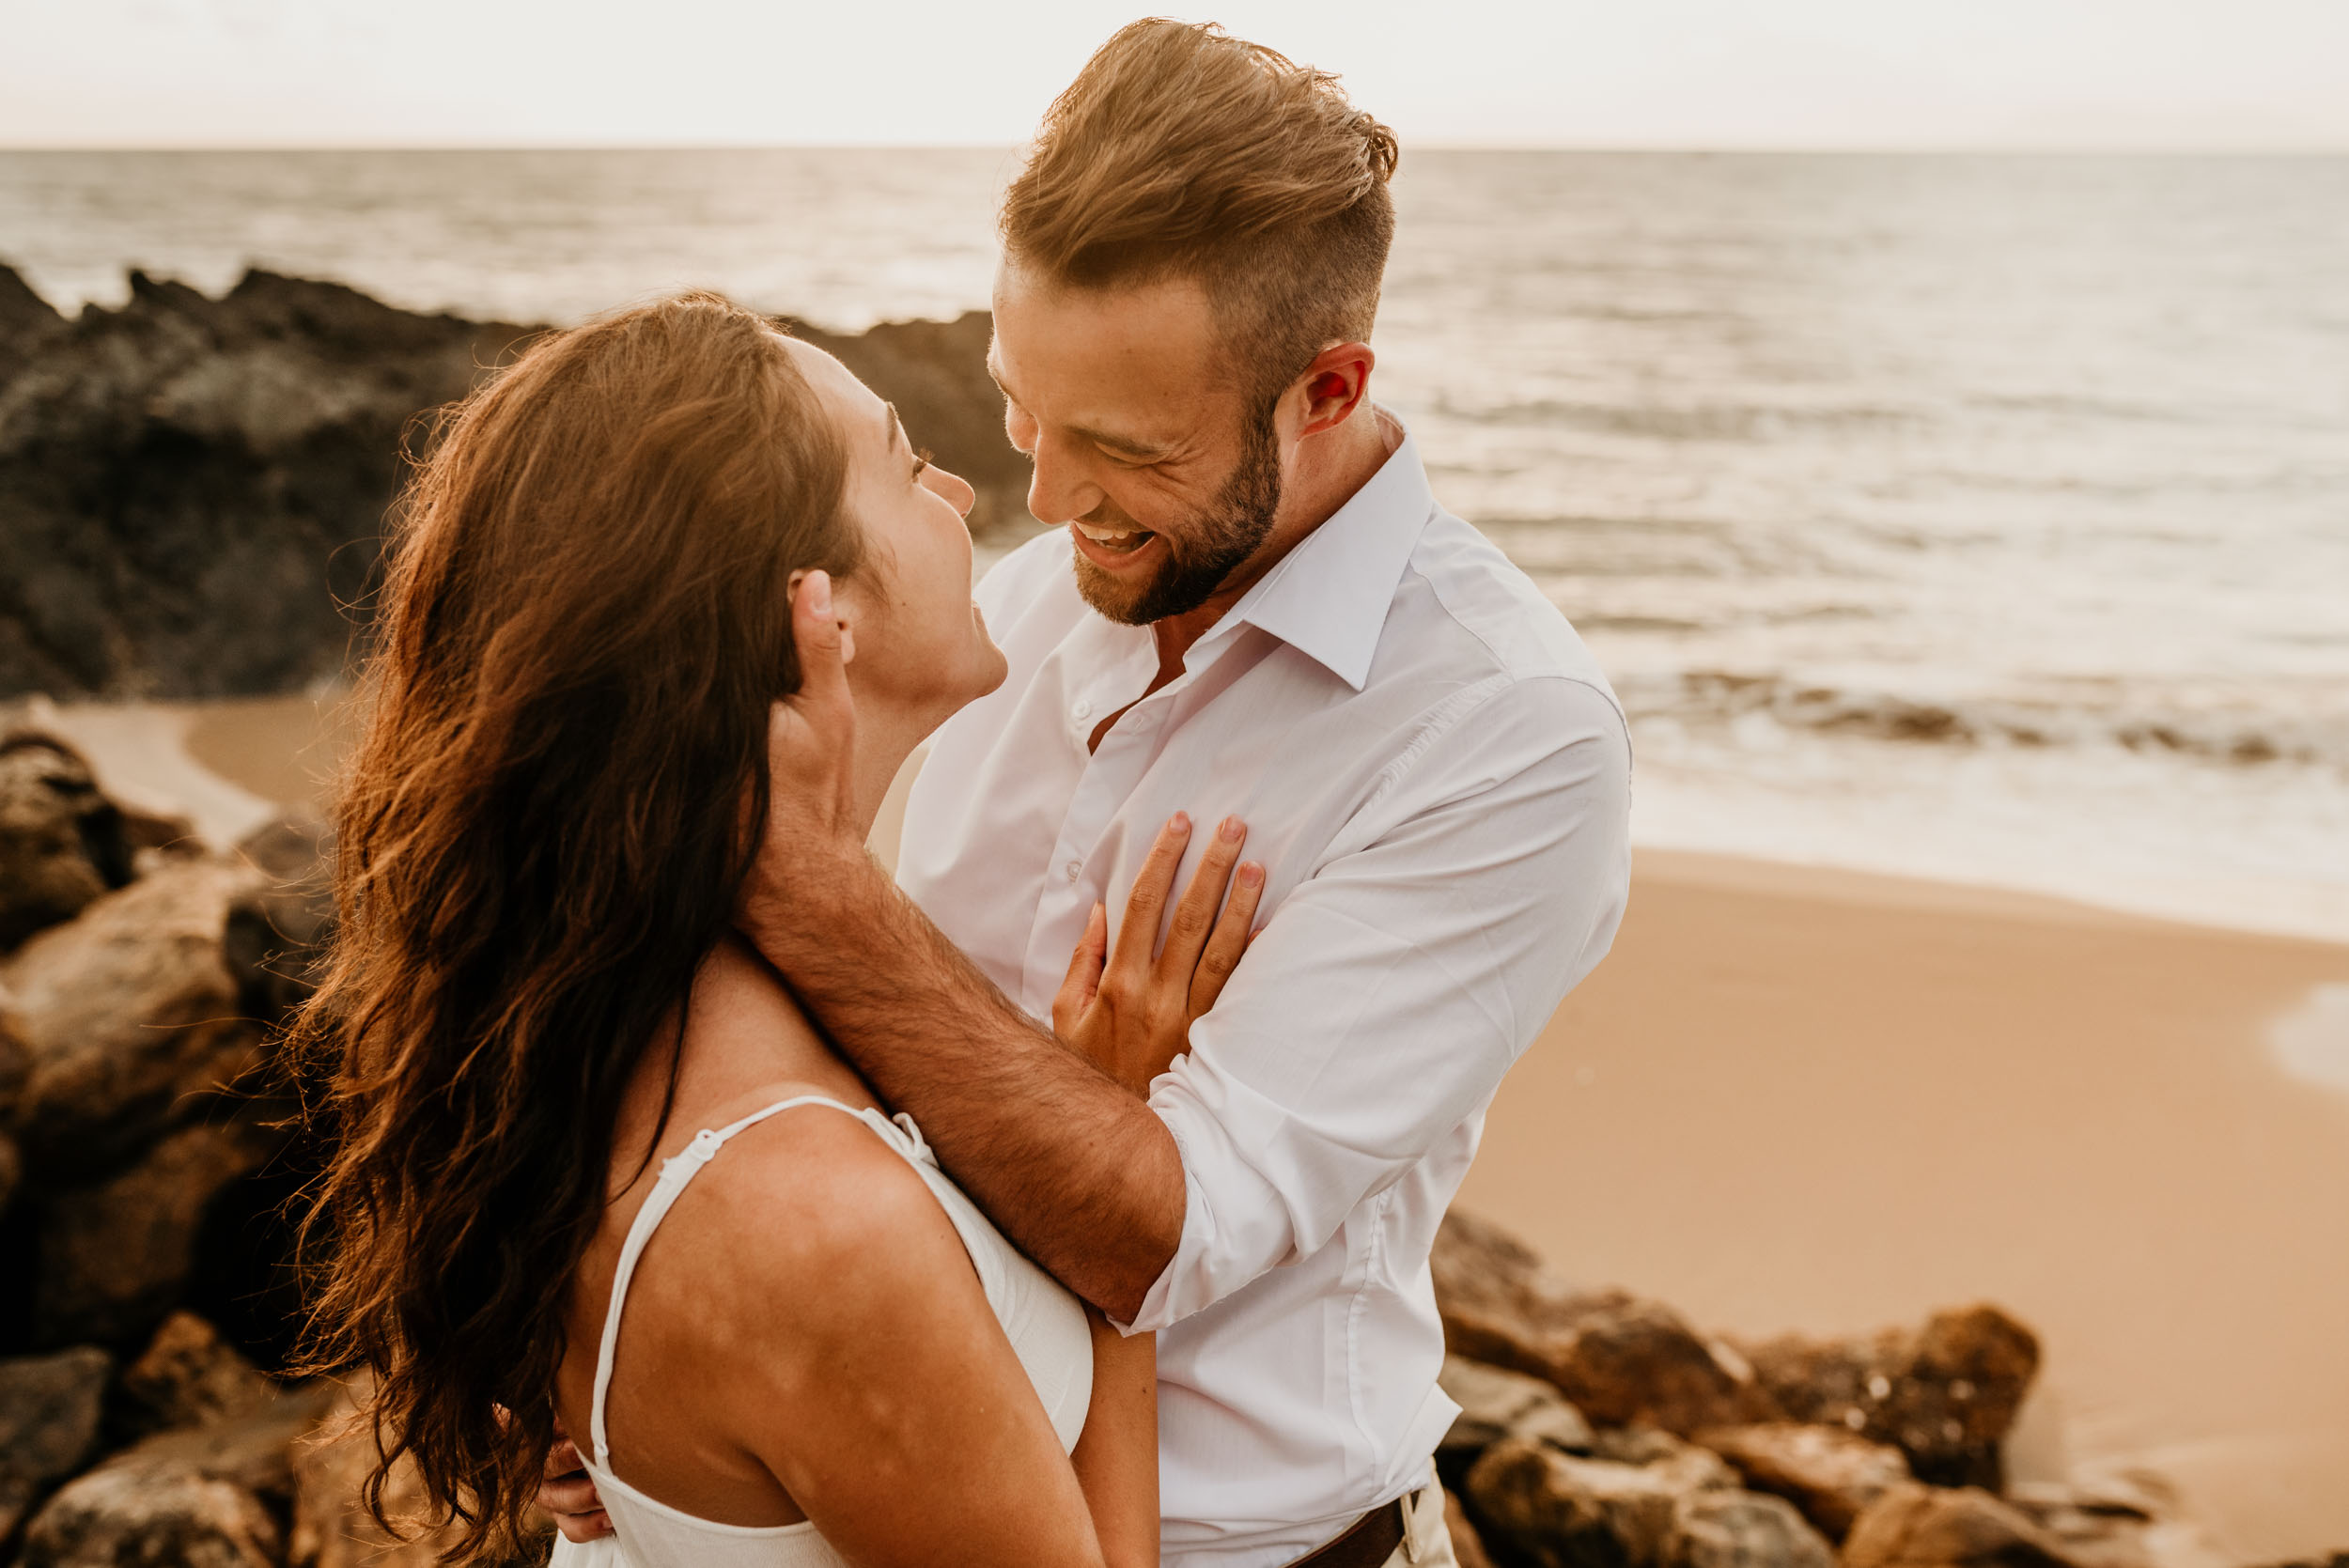 The Raw Photographer - Cairns Wedding Photographer - Engaged Engagement - Beach location - Candid Photography Queensland-35.jpg